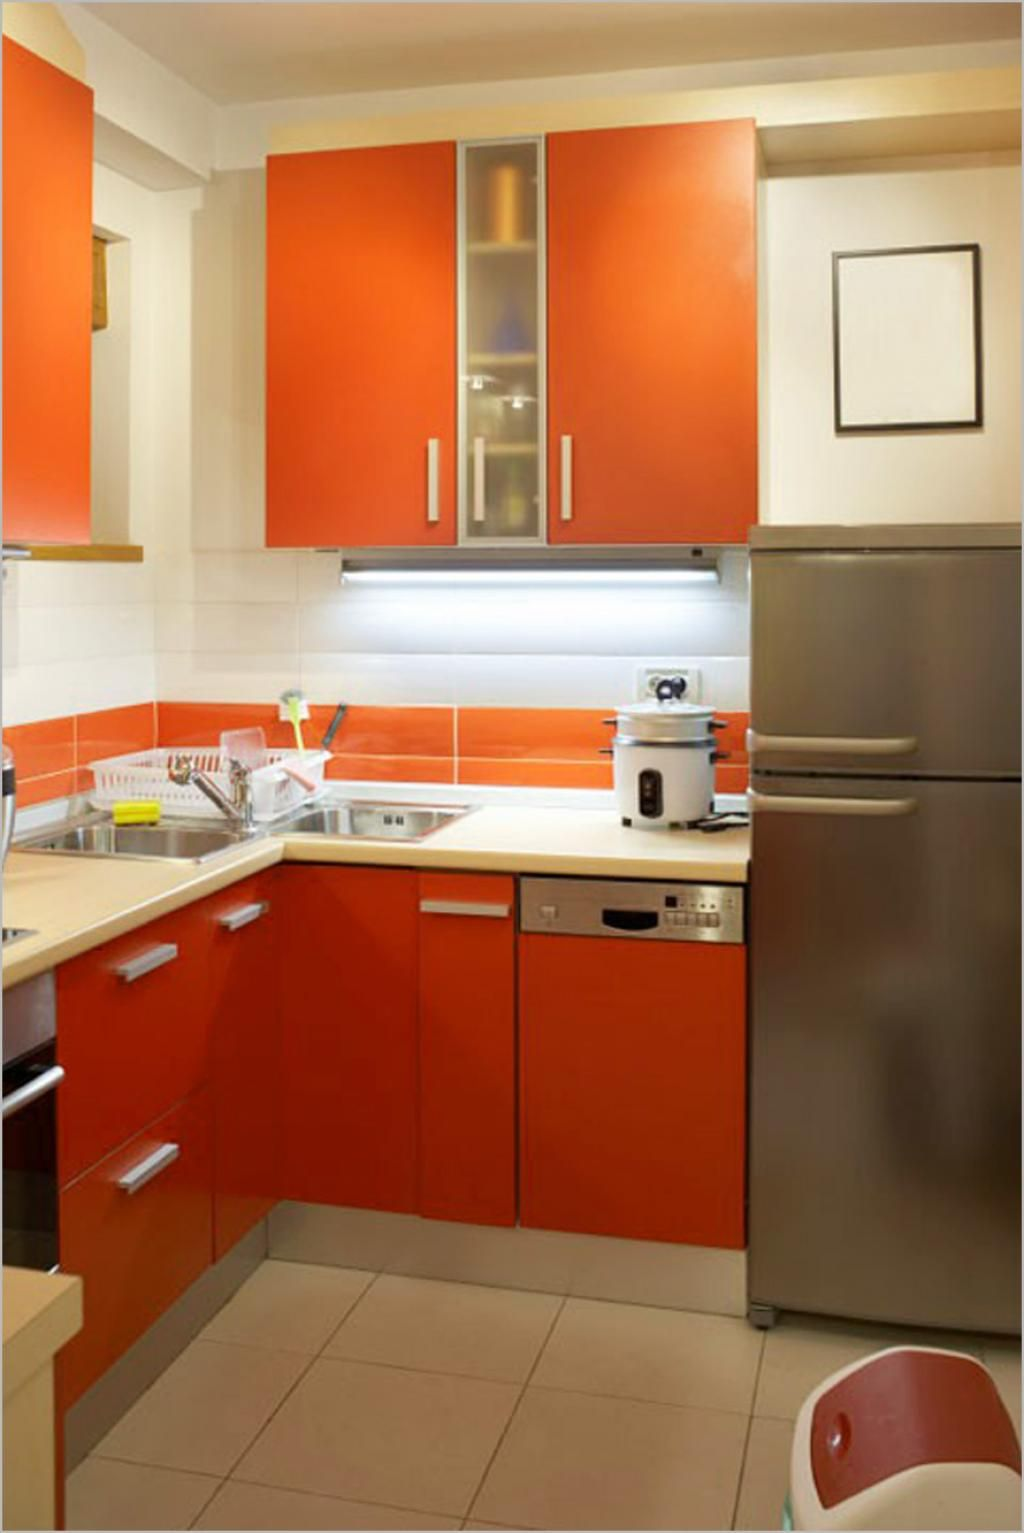 small kitchen design planning is very important since the kitchen can be the main focal point - Narrow Kitchen Cabinet